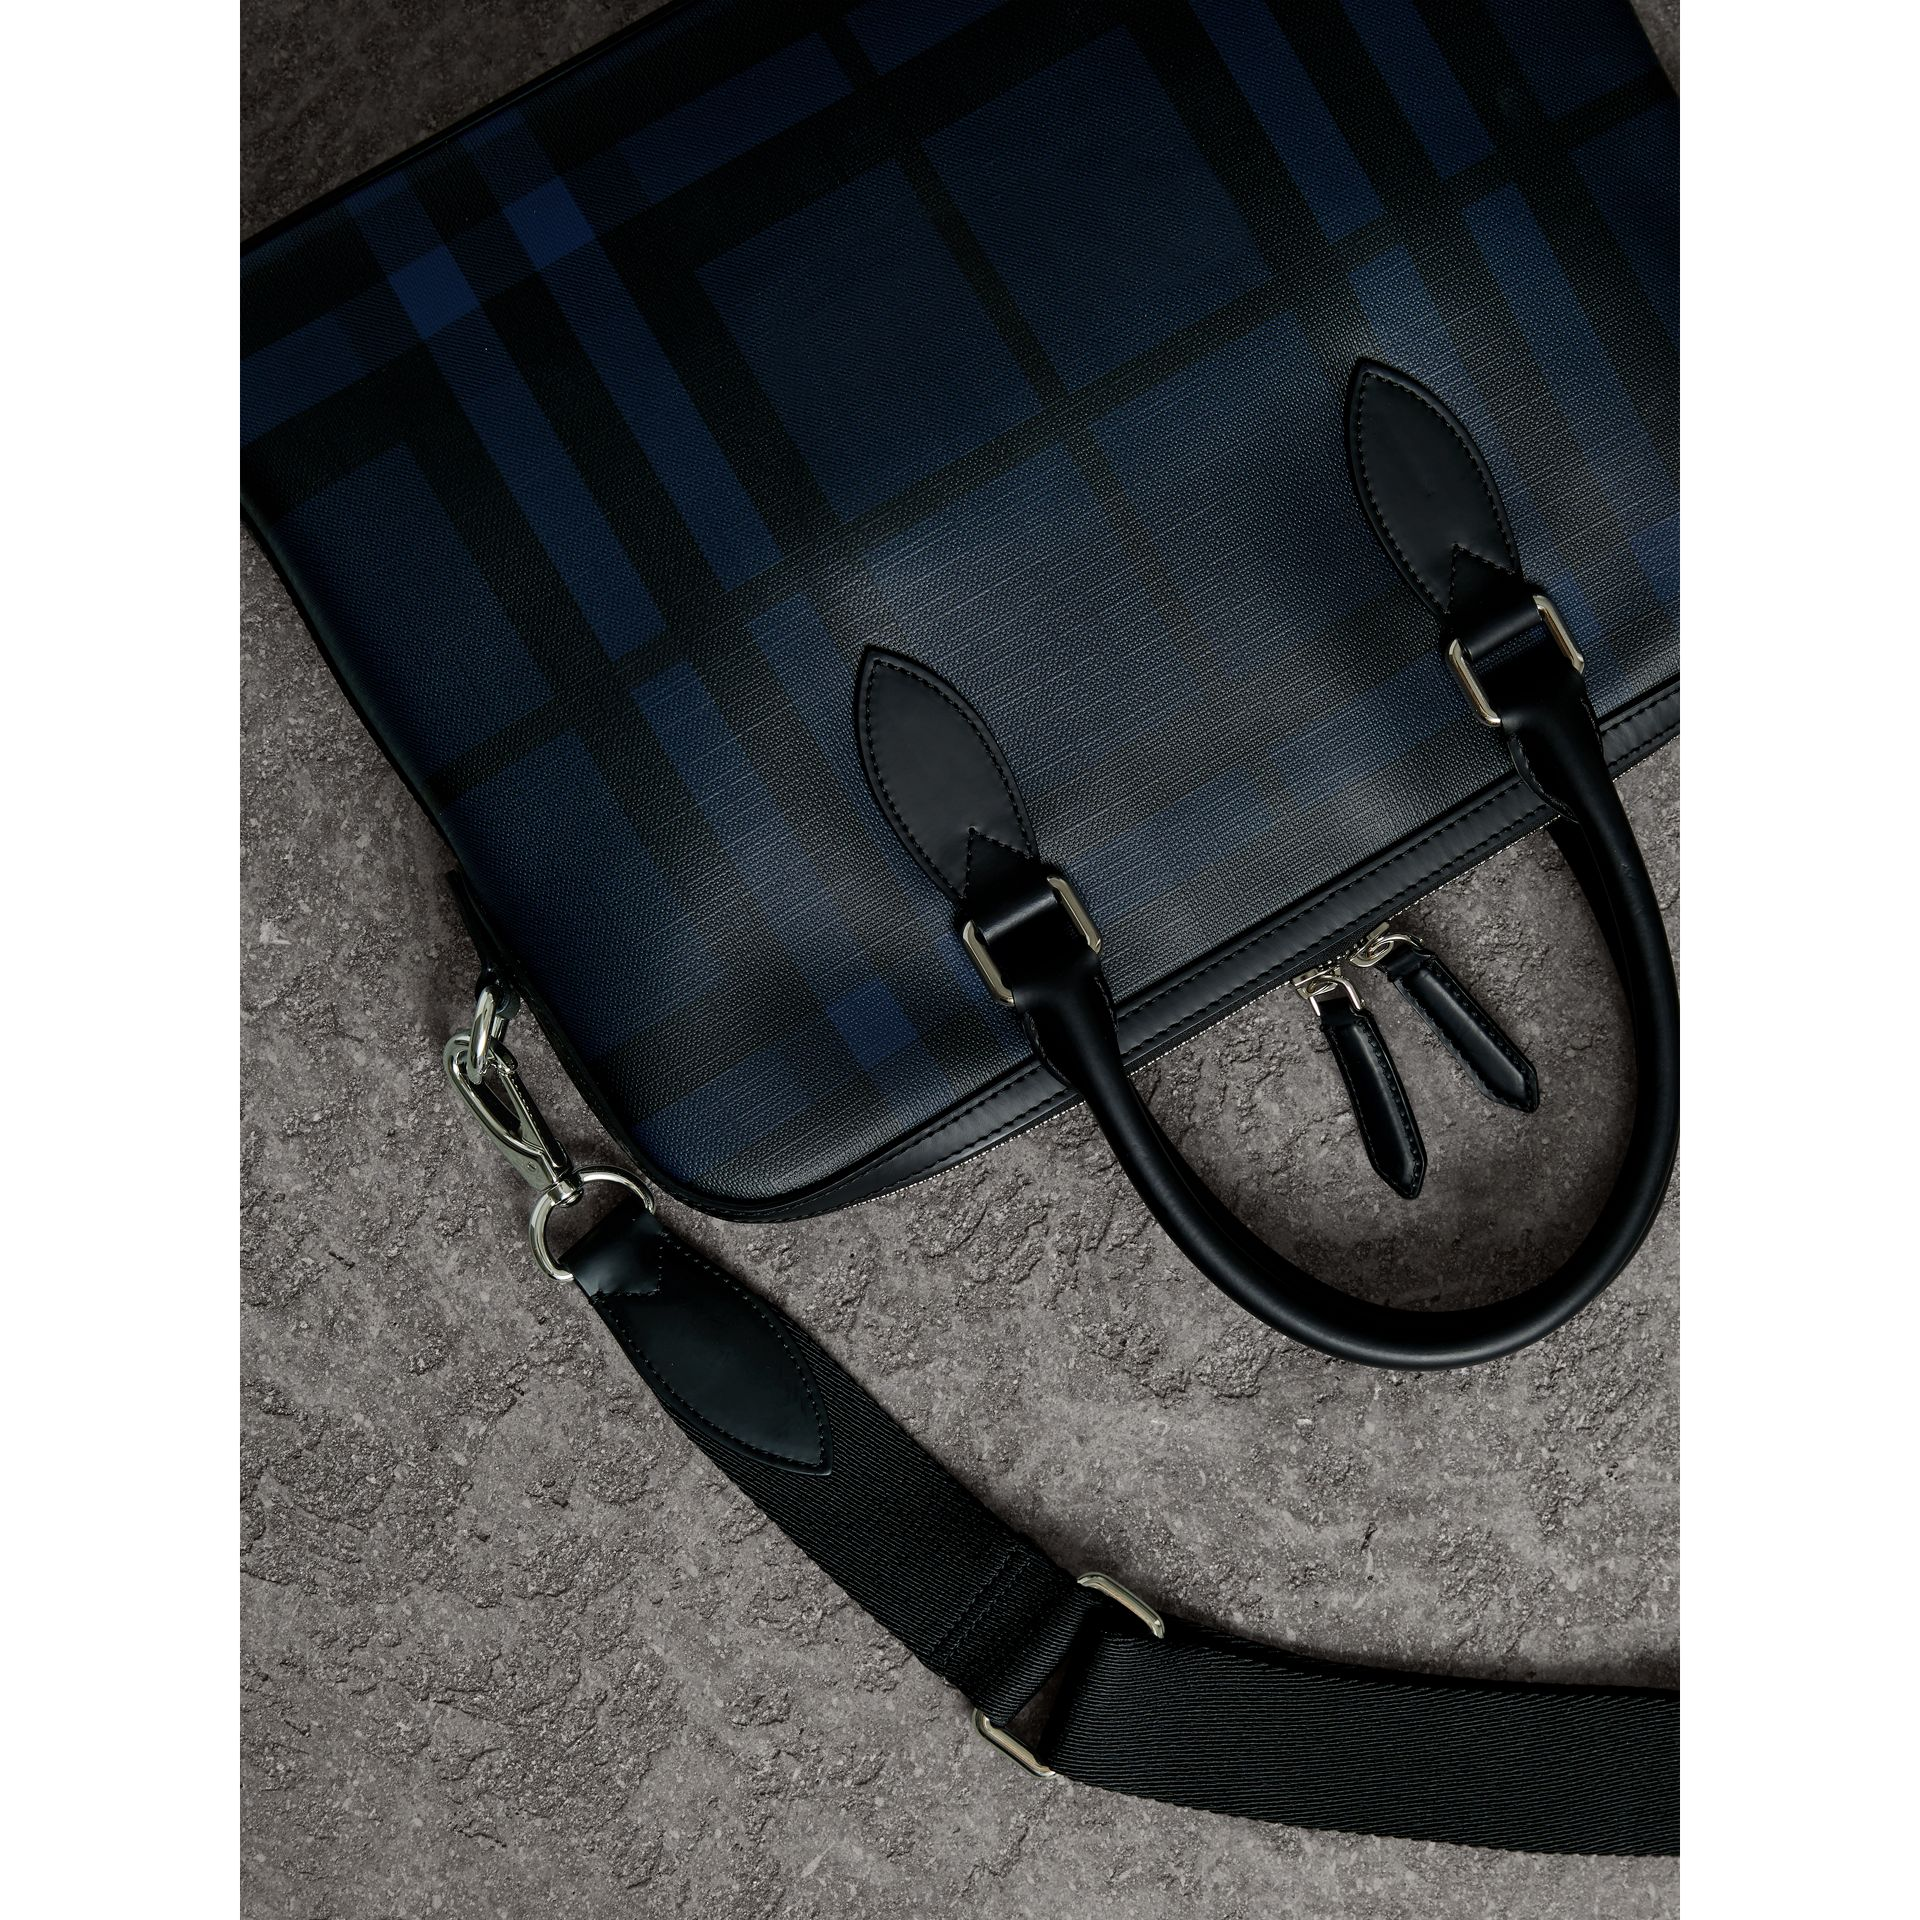 Medium Leather Trim London Check Briefcase in Navy/black - Men | Burberry Australia - gallery image 5